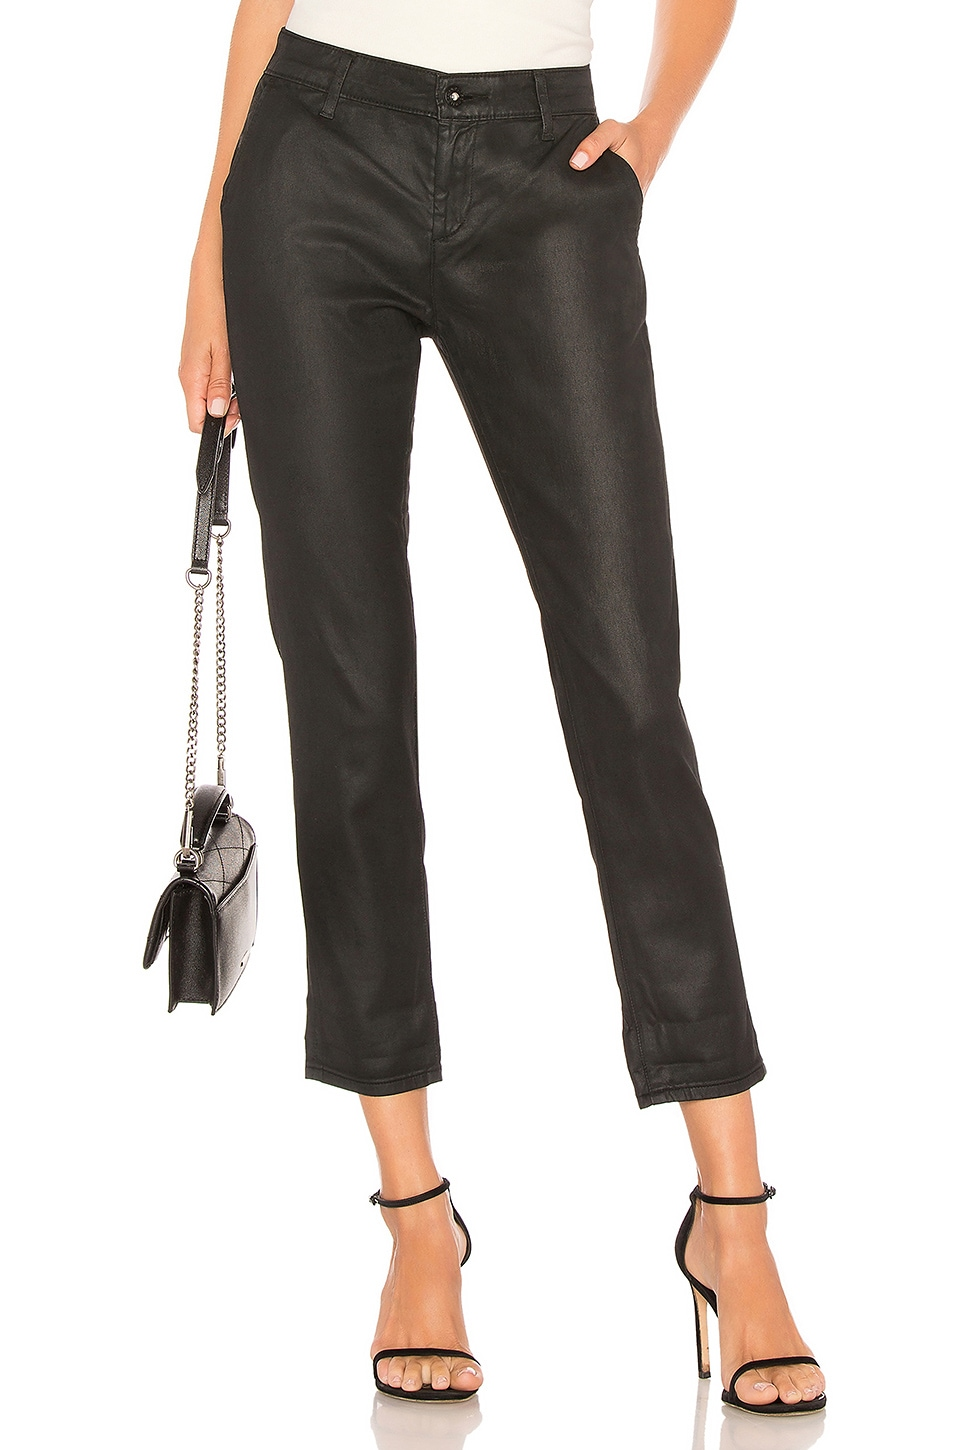 AG Adriano Goldschmied Caden Leatherette Pant in Leatherette Lt Super Black